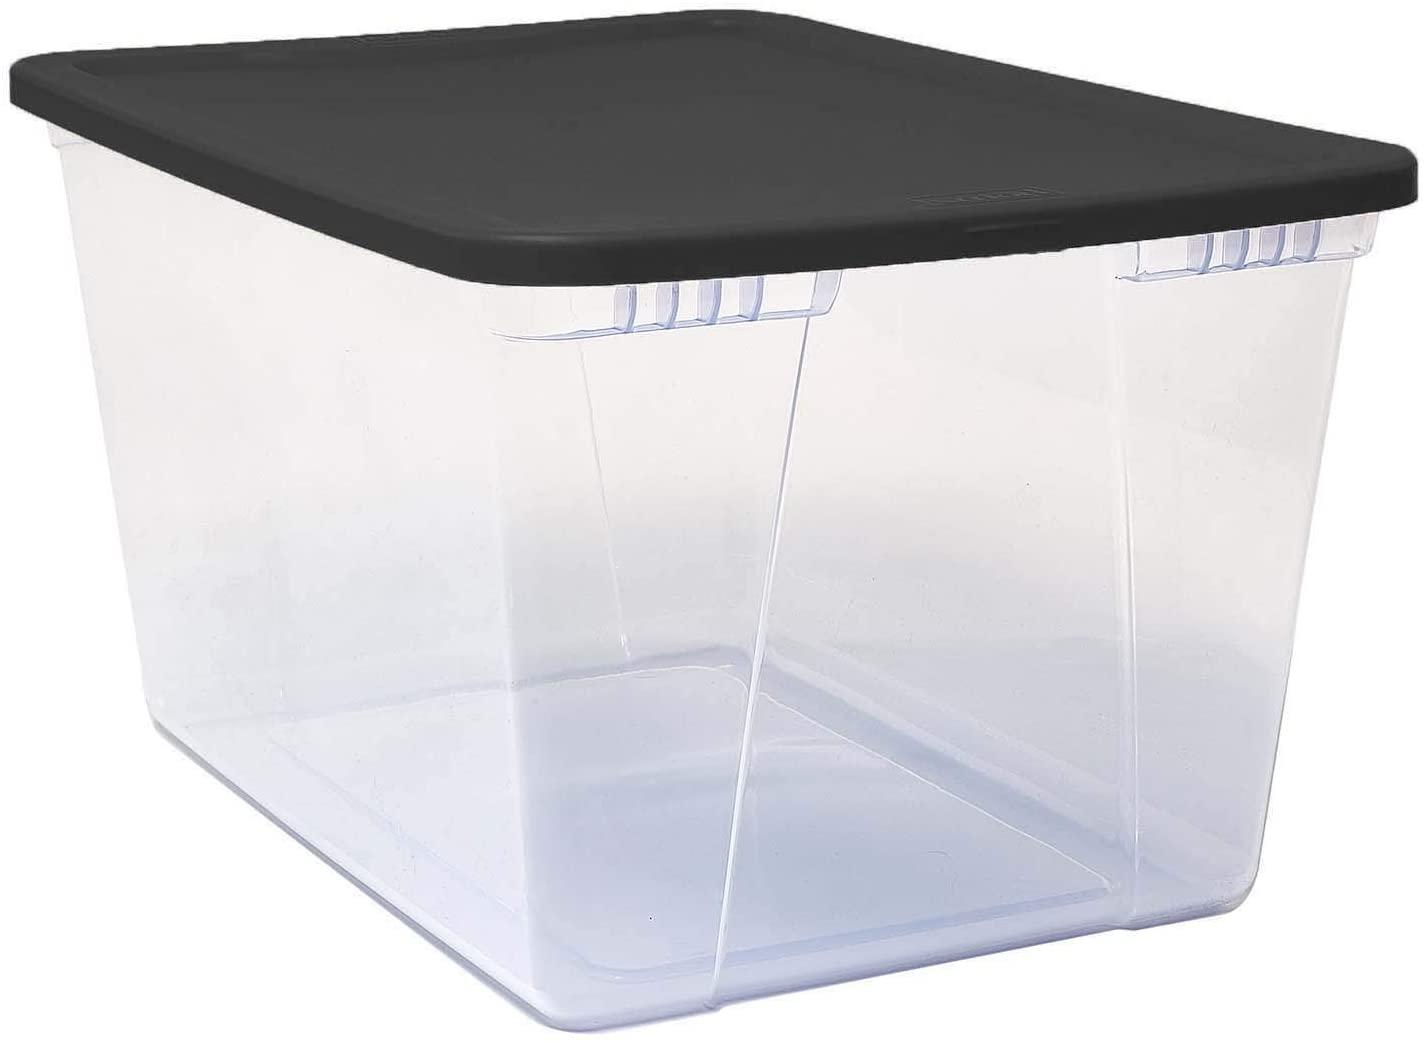 Latest Amazon: Mainstays Snaplock 50 Quart Clear Storage Pertaining To Mainstays Payton View Tv Stands With 2 Bins (View 7 of 10)